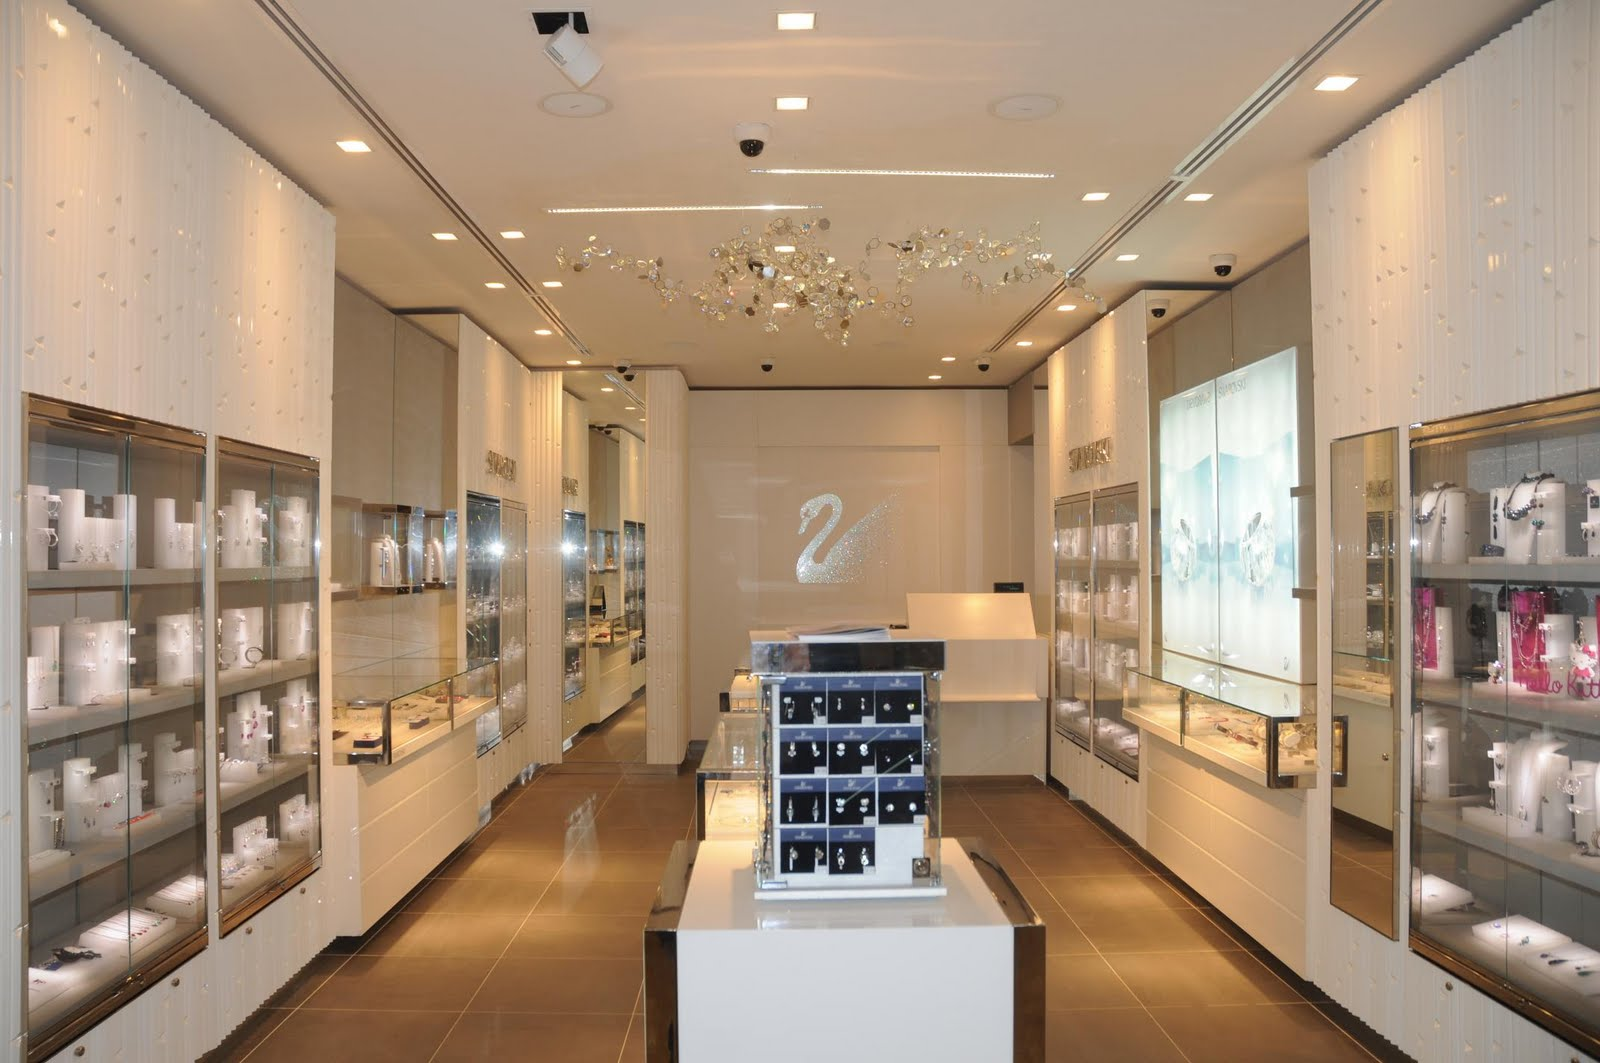 Dubai News Today Swarovski Unveils New Design Ideas For Its Stores On The Occasion Of The New